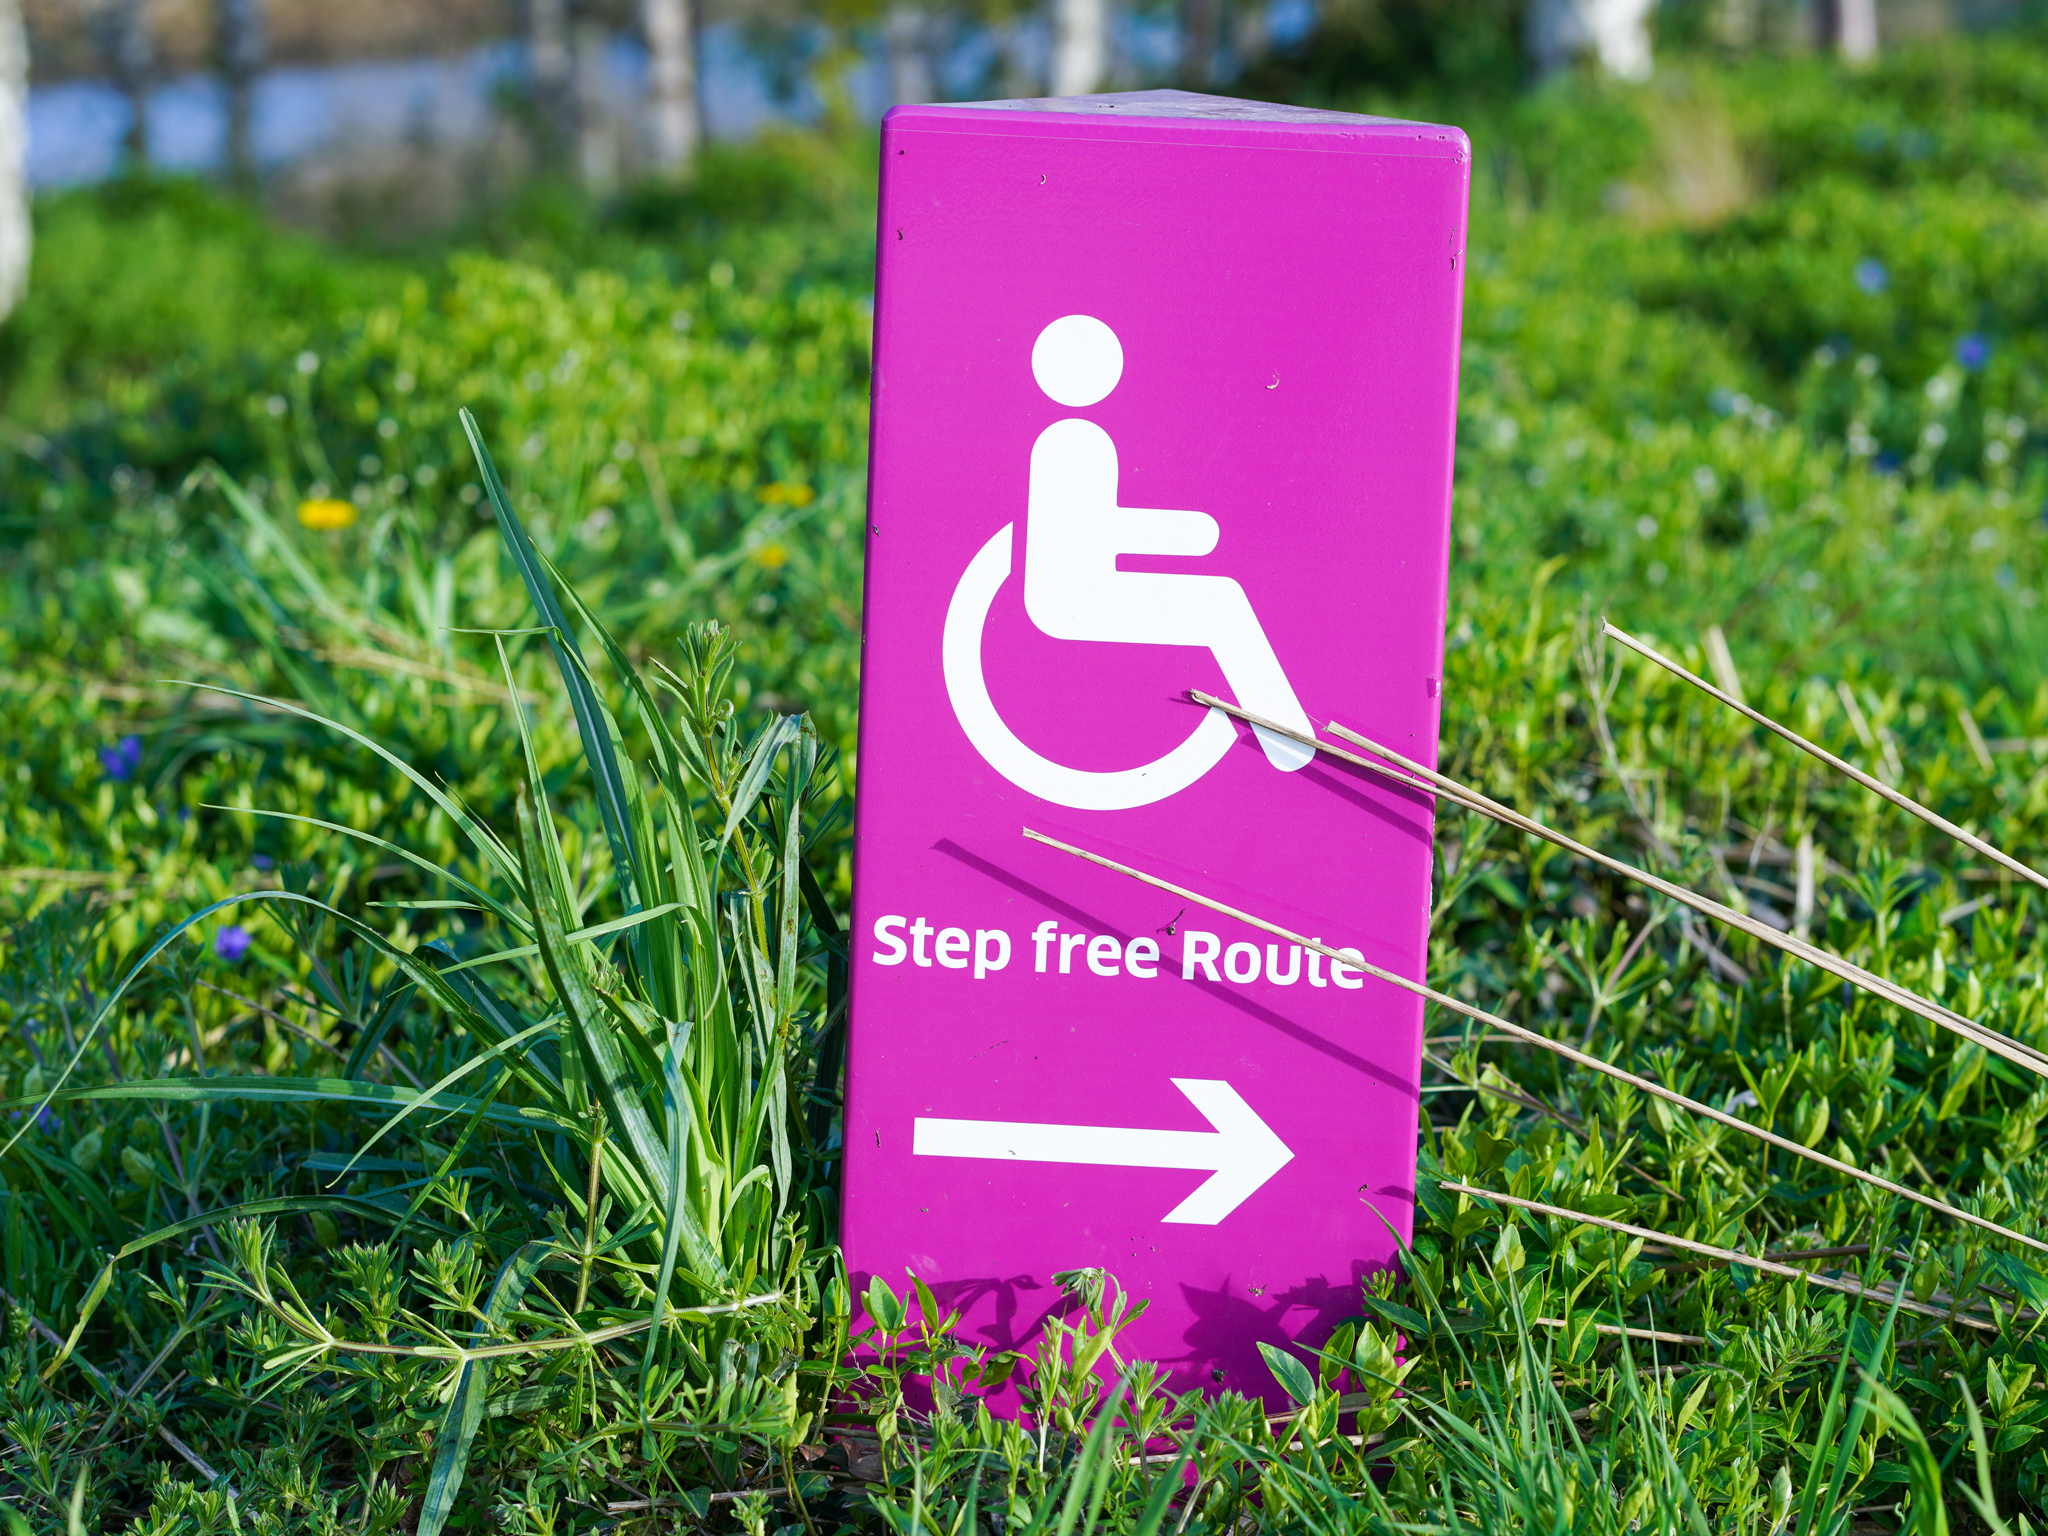 A handicapped accessible sign labeled step free route